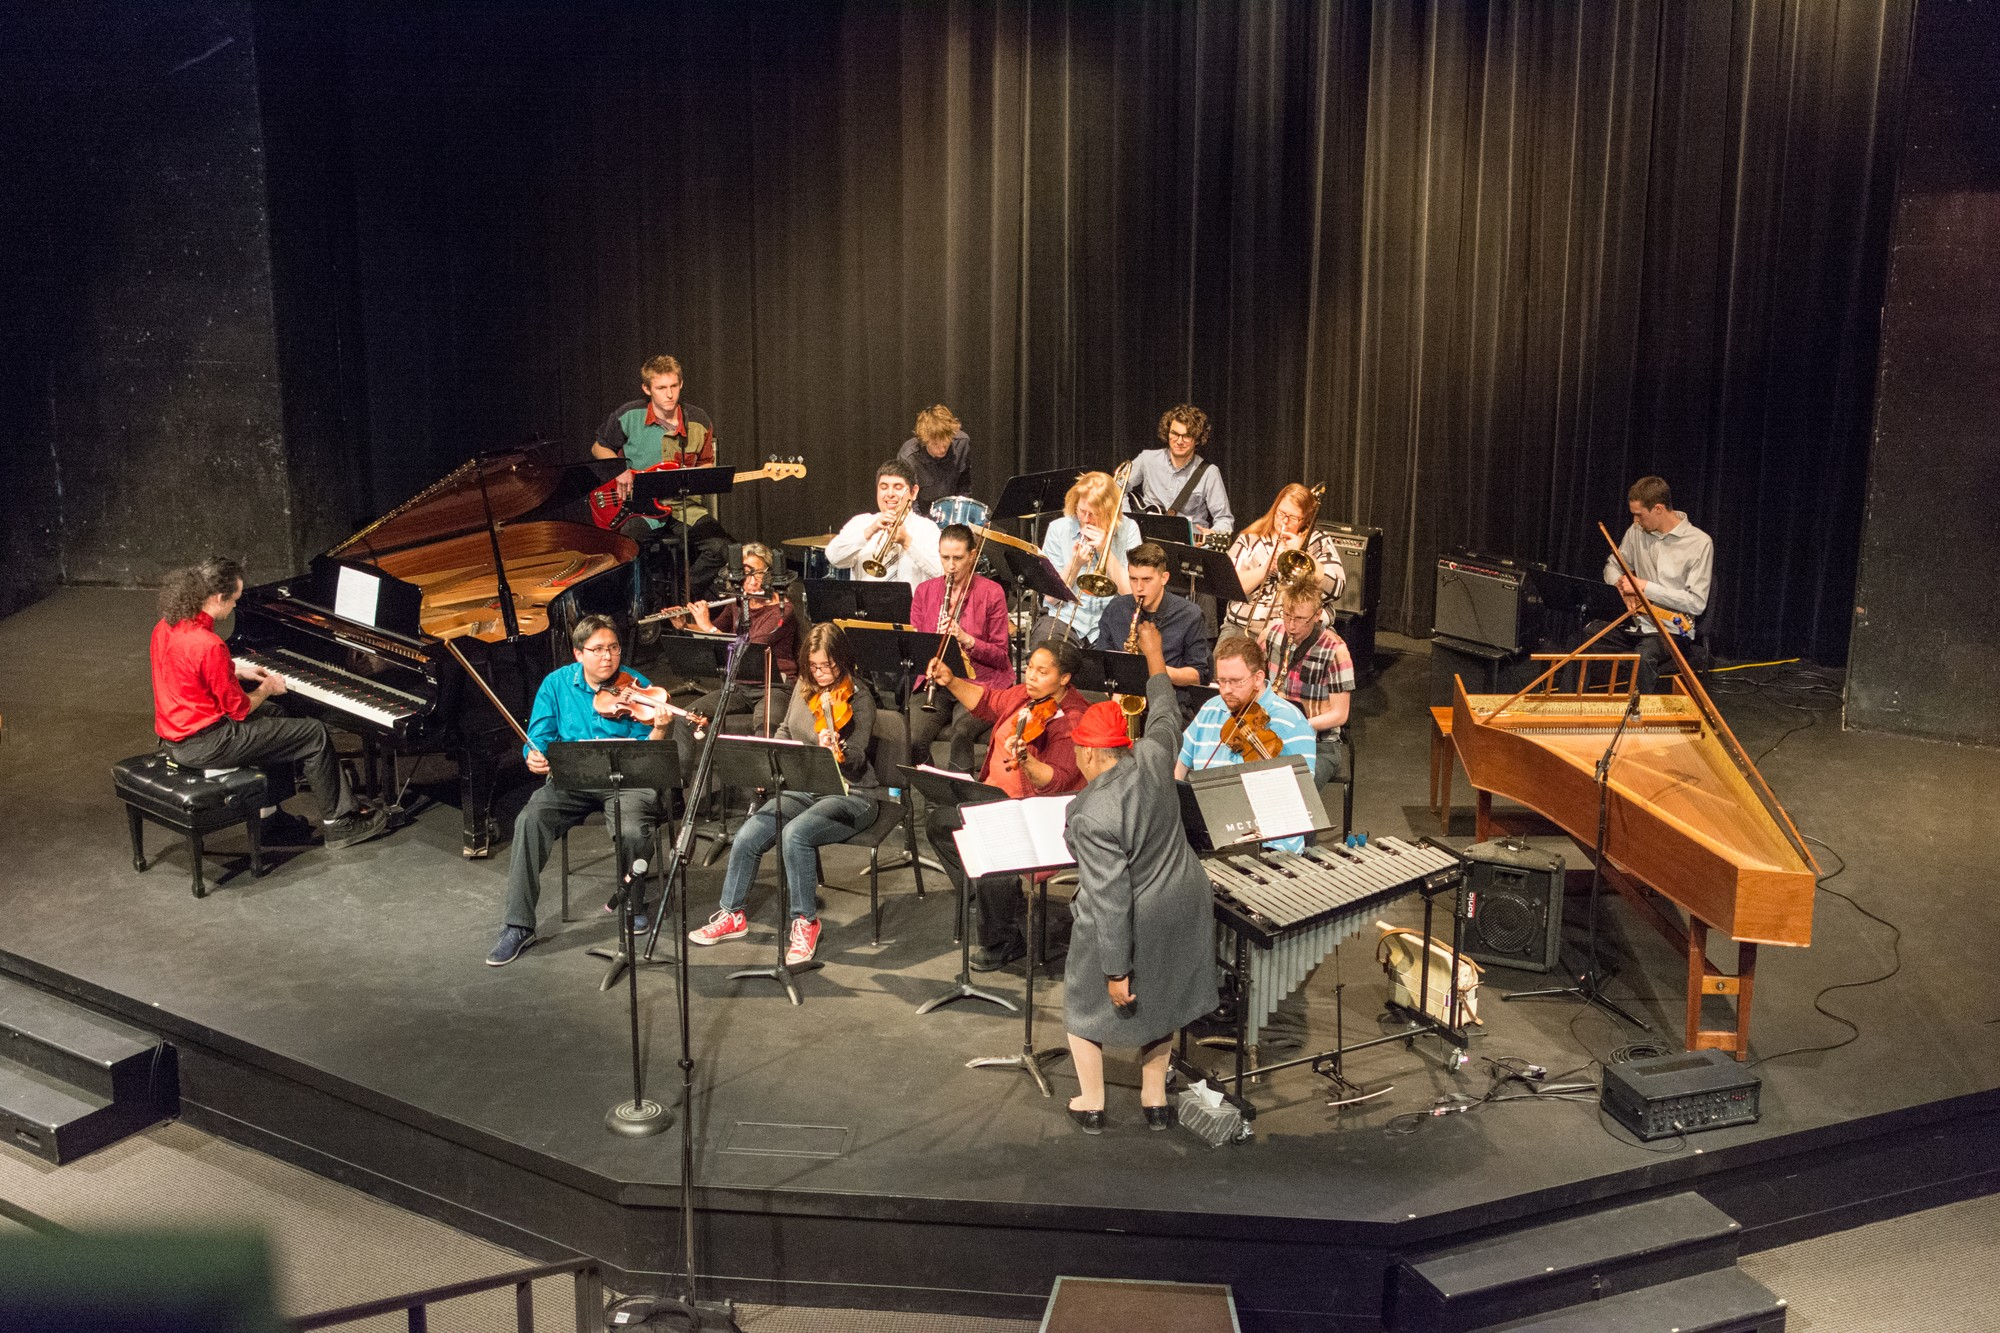 Ensembles showcase skill in semester-end concert